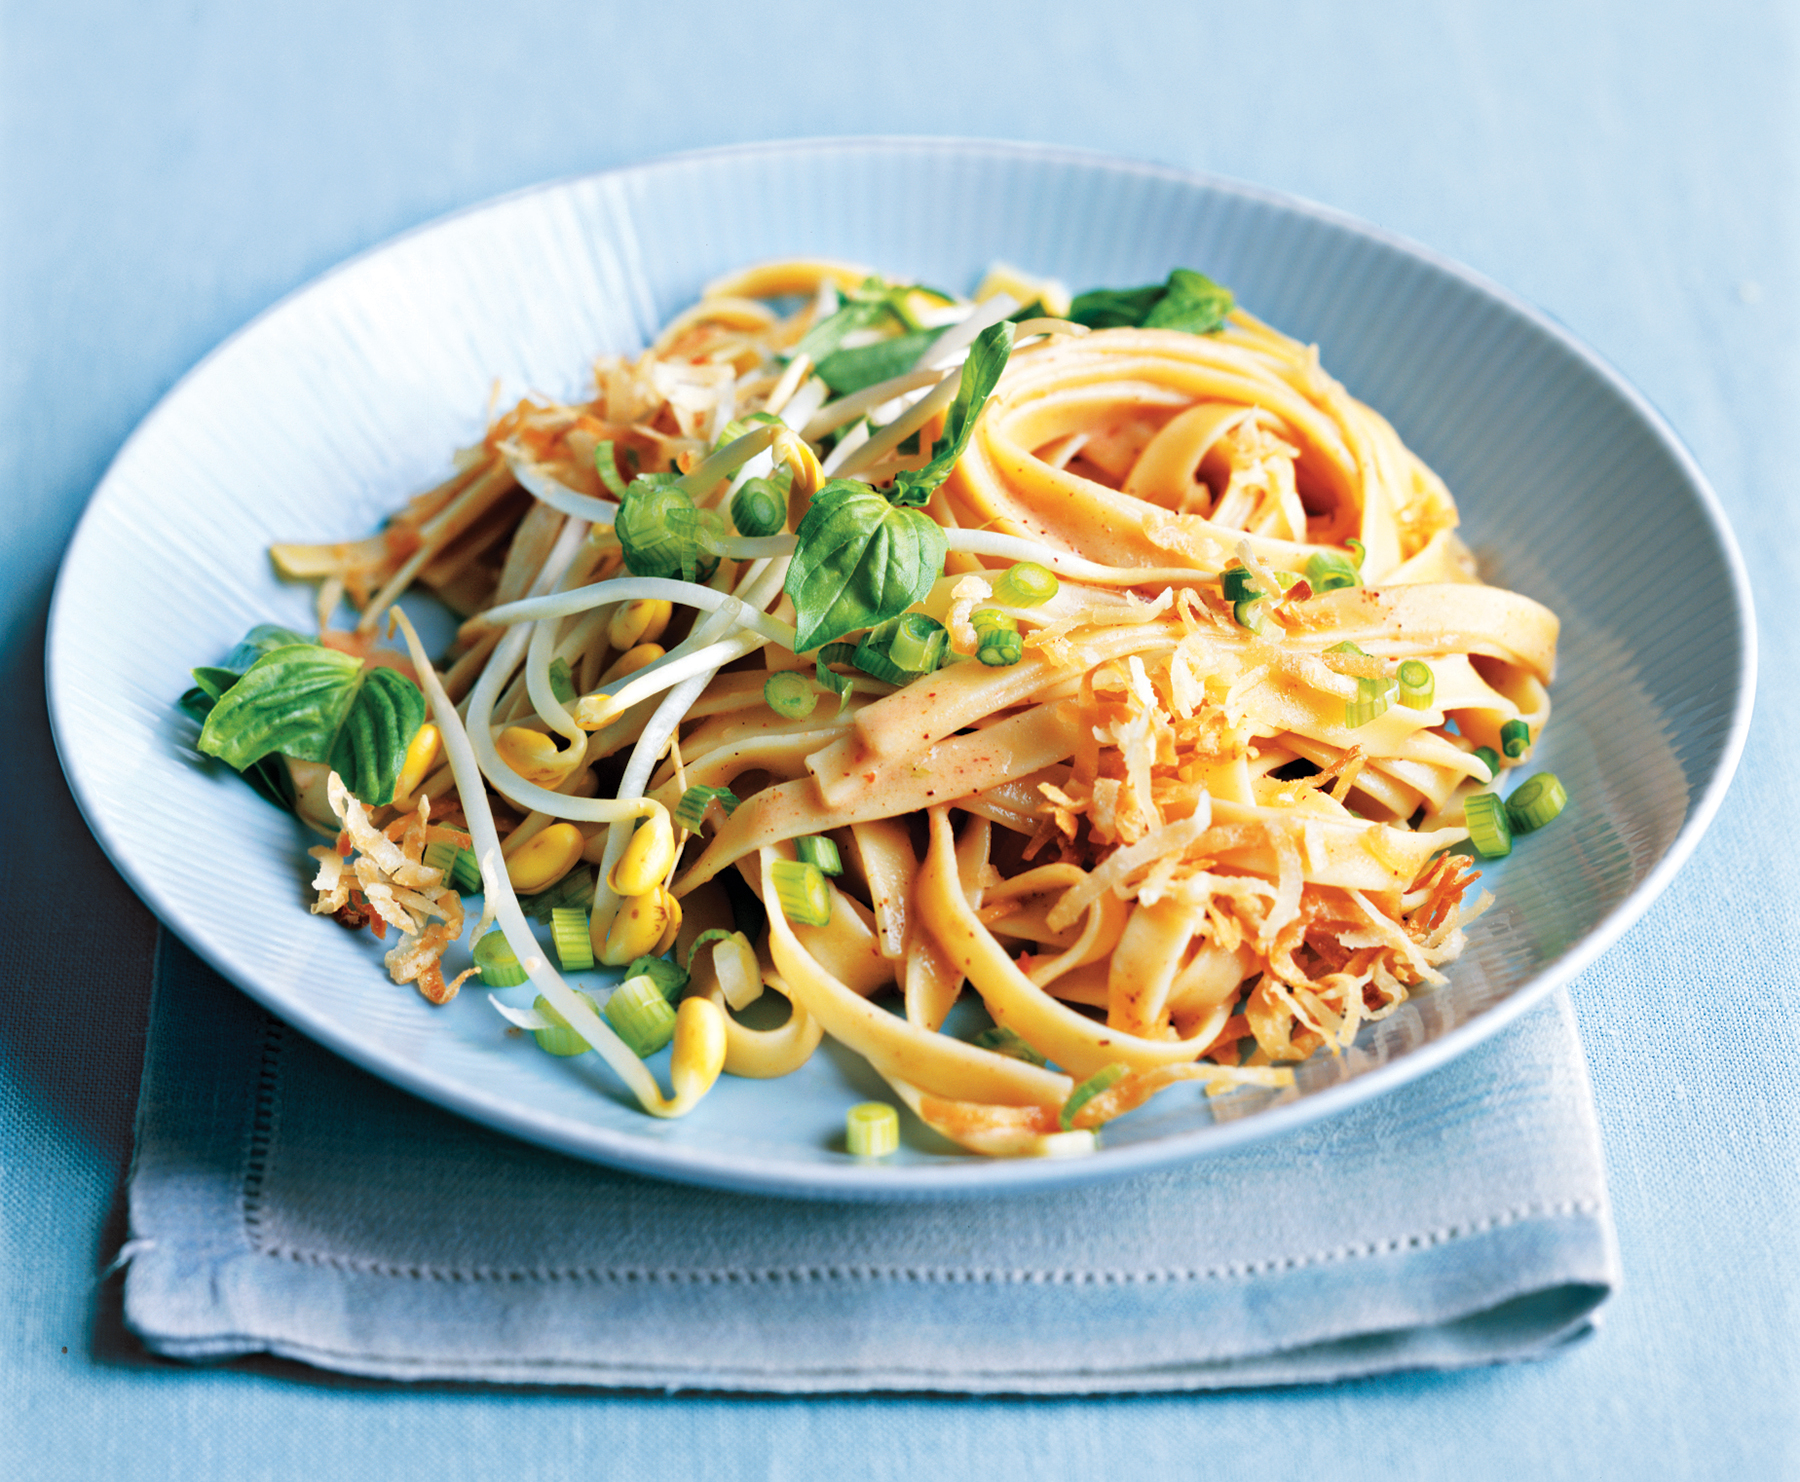 Spicy Coconut Noodles